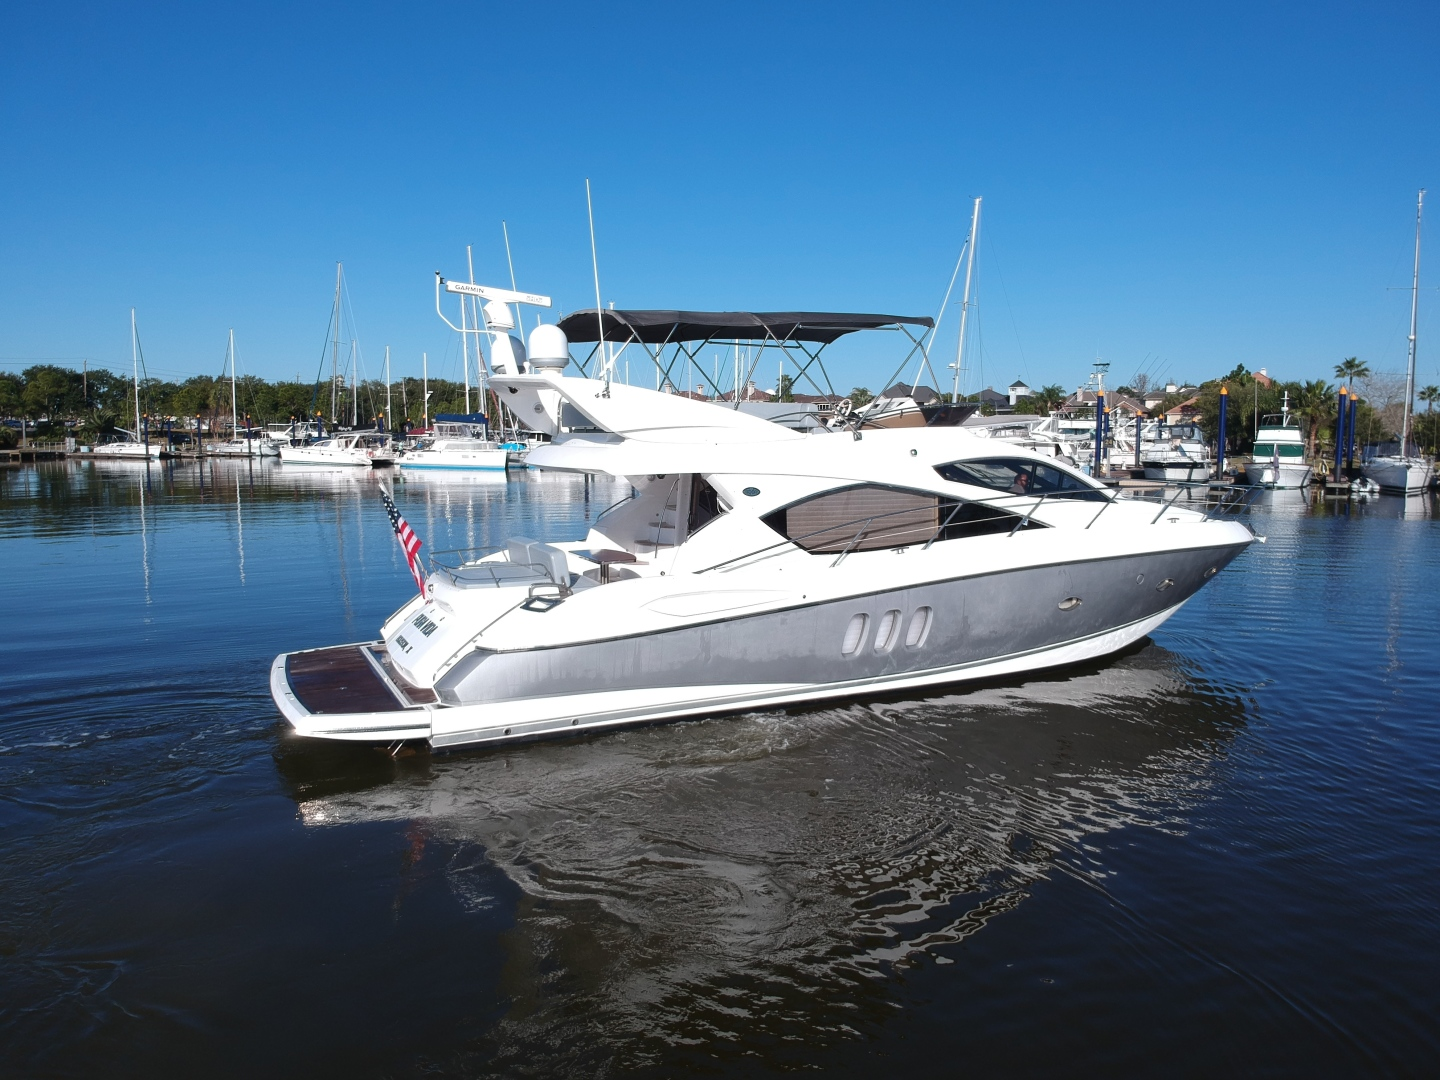 Sunseeker-52 Manhattan 2009-Pura Vida Kemah-Texas-United States-Sunseeker 52 Manhattan 2009 Pura Vida-1584069 | Thumbnail